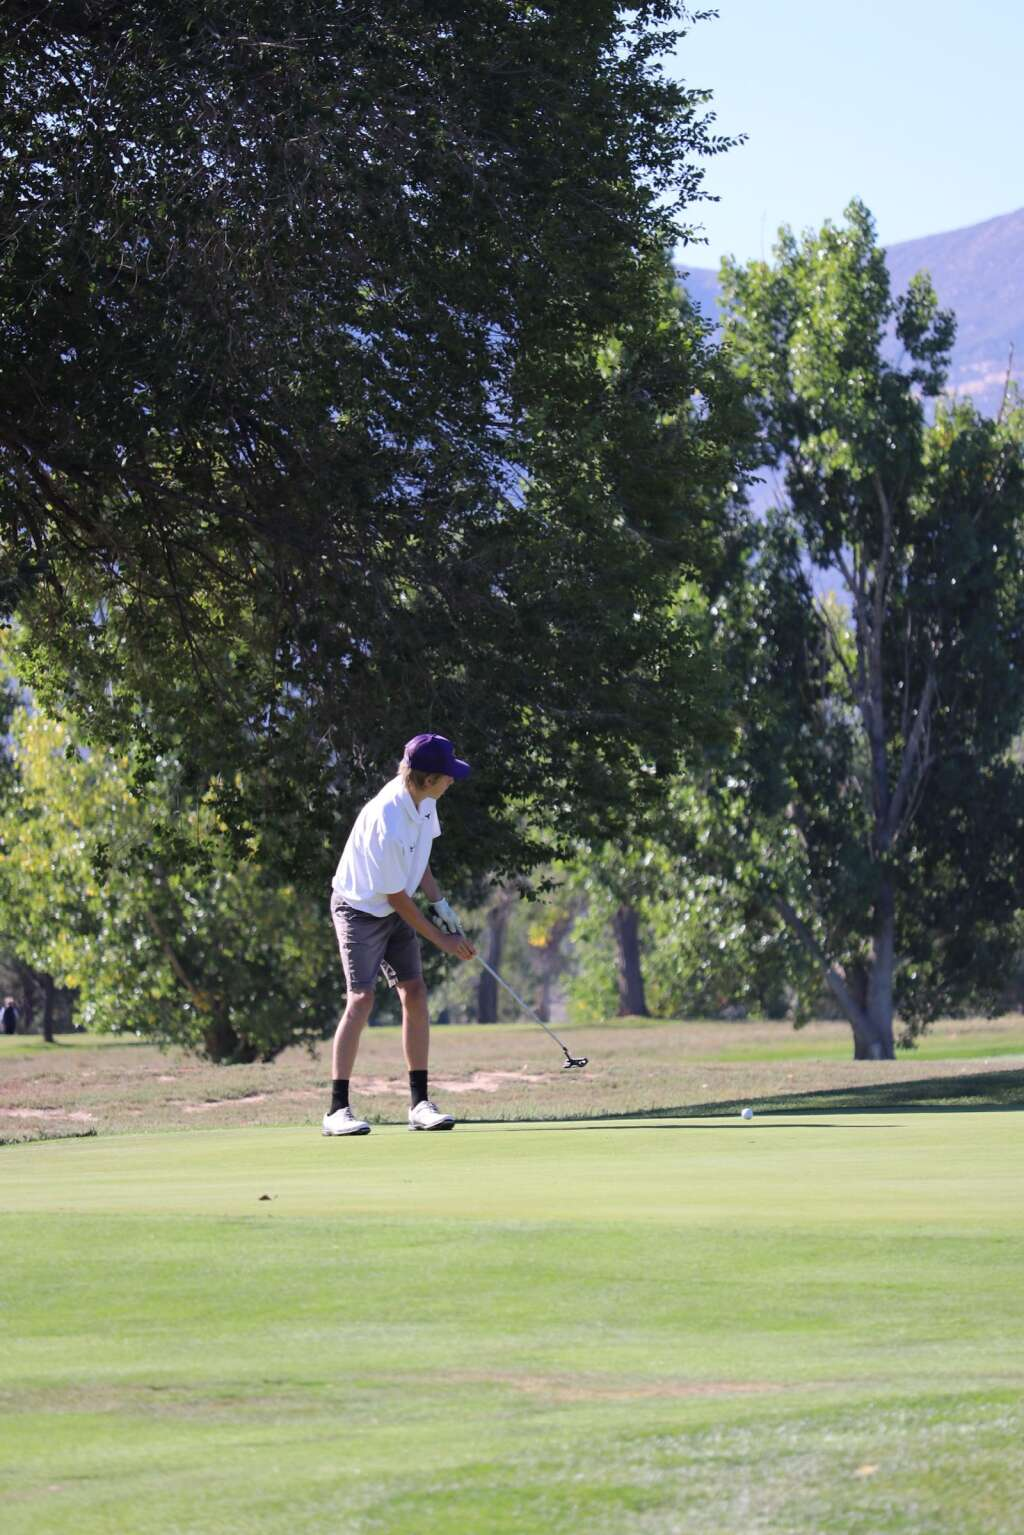 The Basalt High School boys golf team is sending three players to the state tournament on Monday and Tuesday in Elizabeth. Courtesy photo.